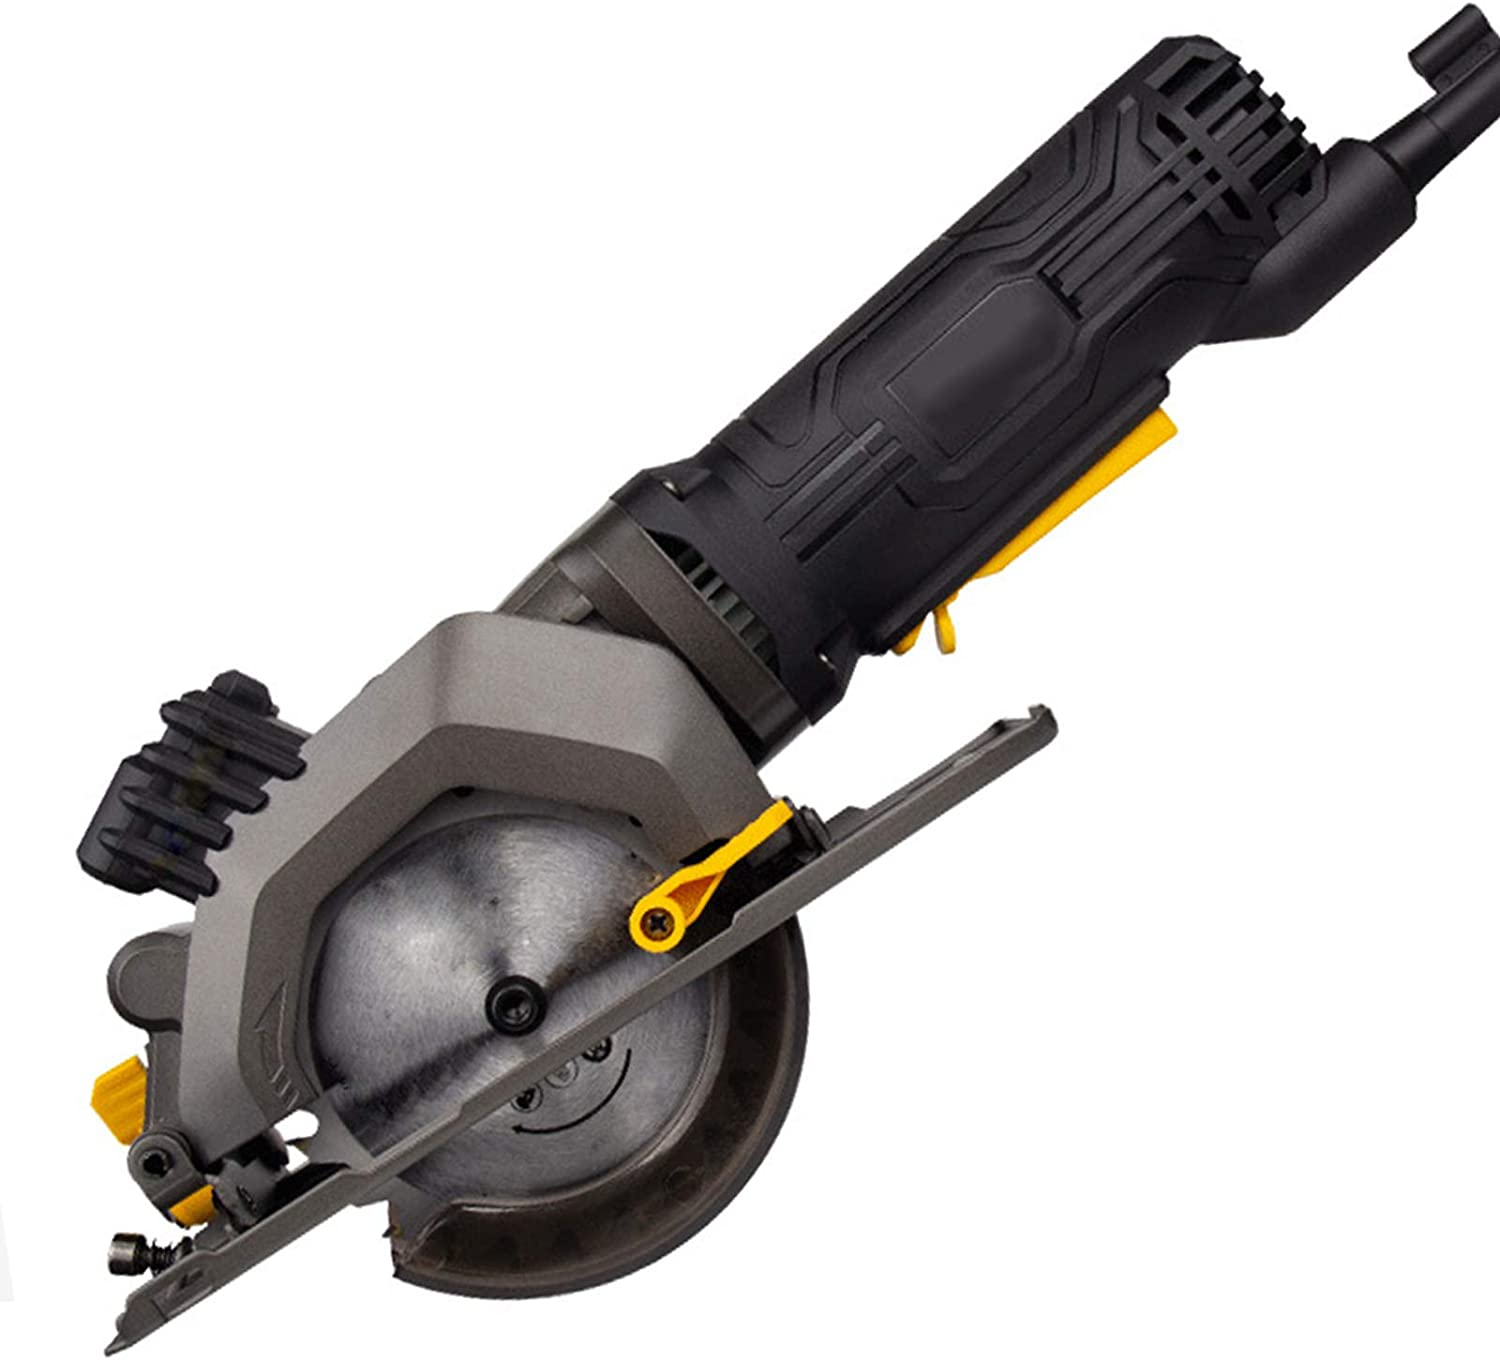 Super intense SALE hdbees Mini Circular Saw 45mm Guide Fi Max 51% OFF Laser with